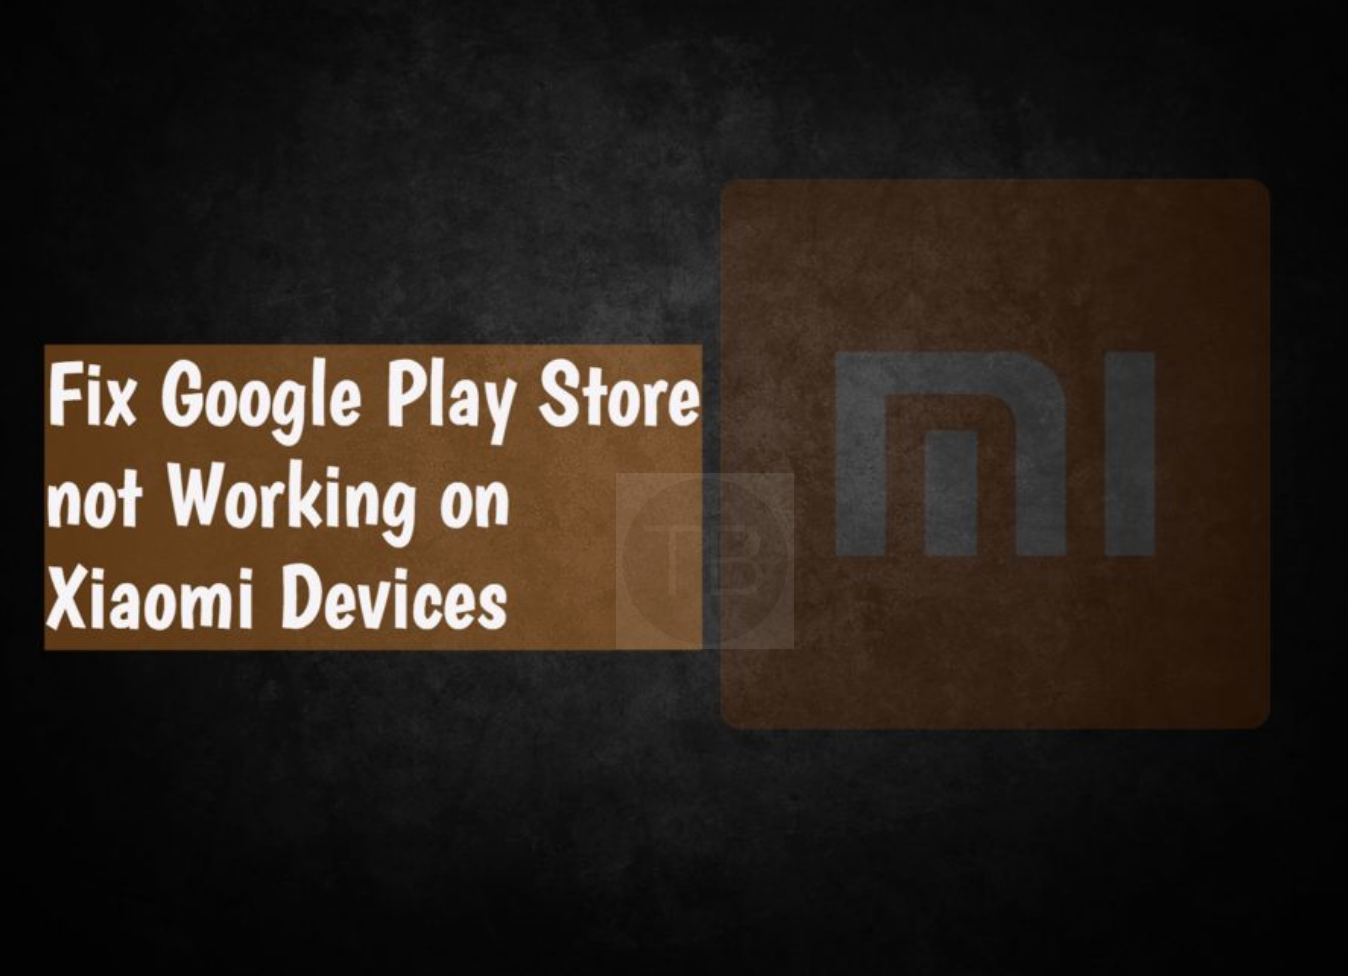 Google Play Store not working on Xiaomi